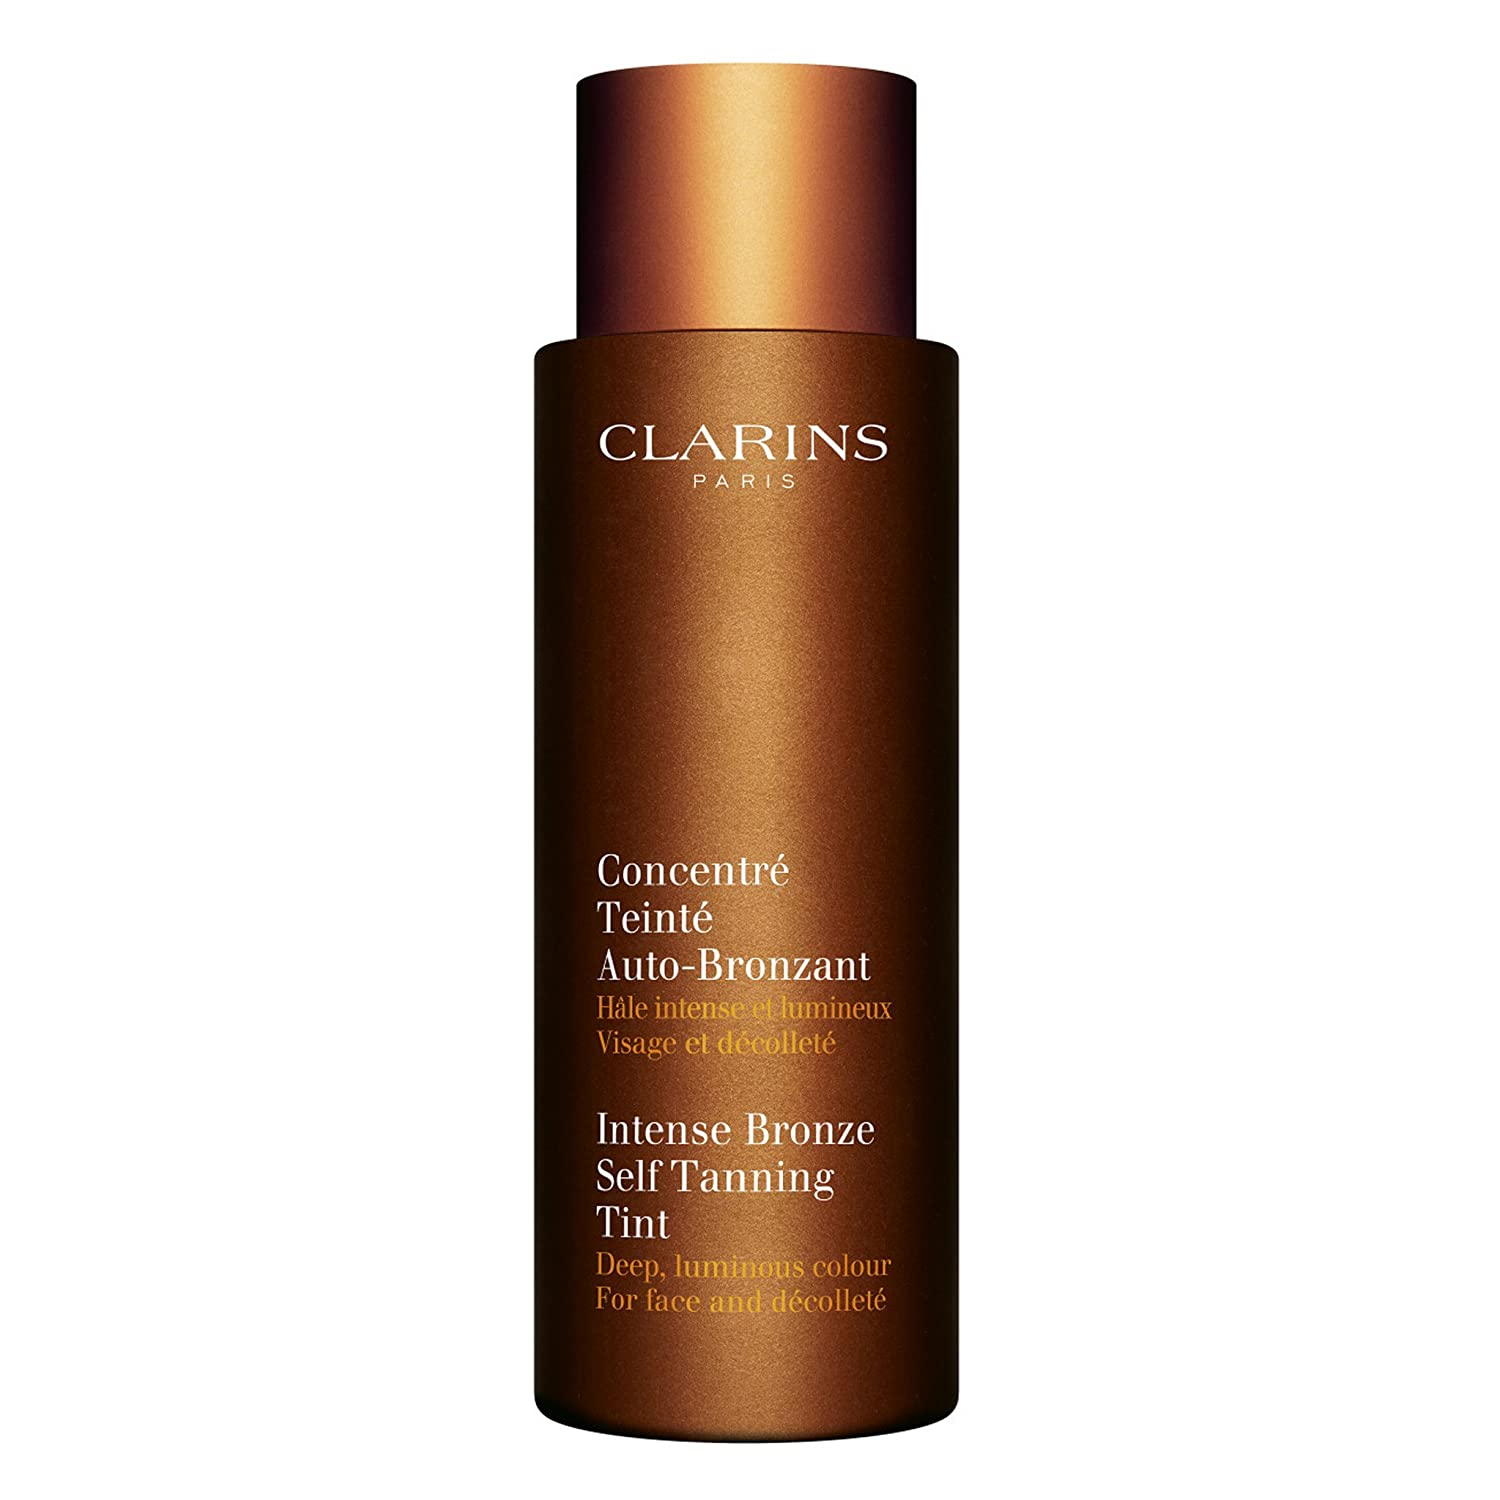 Clarins Intense Bronze Self Tanning Tint For Face & Decollete 125ml